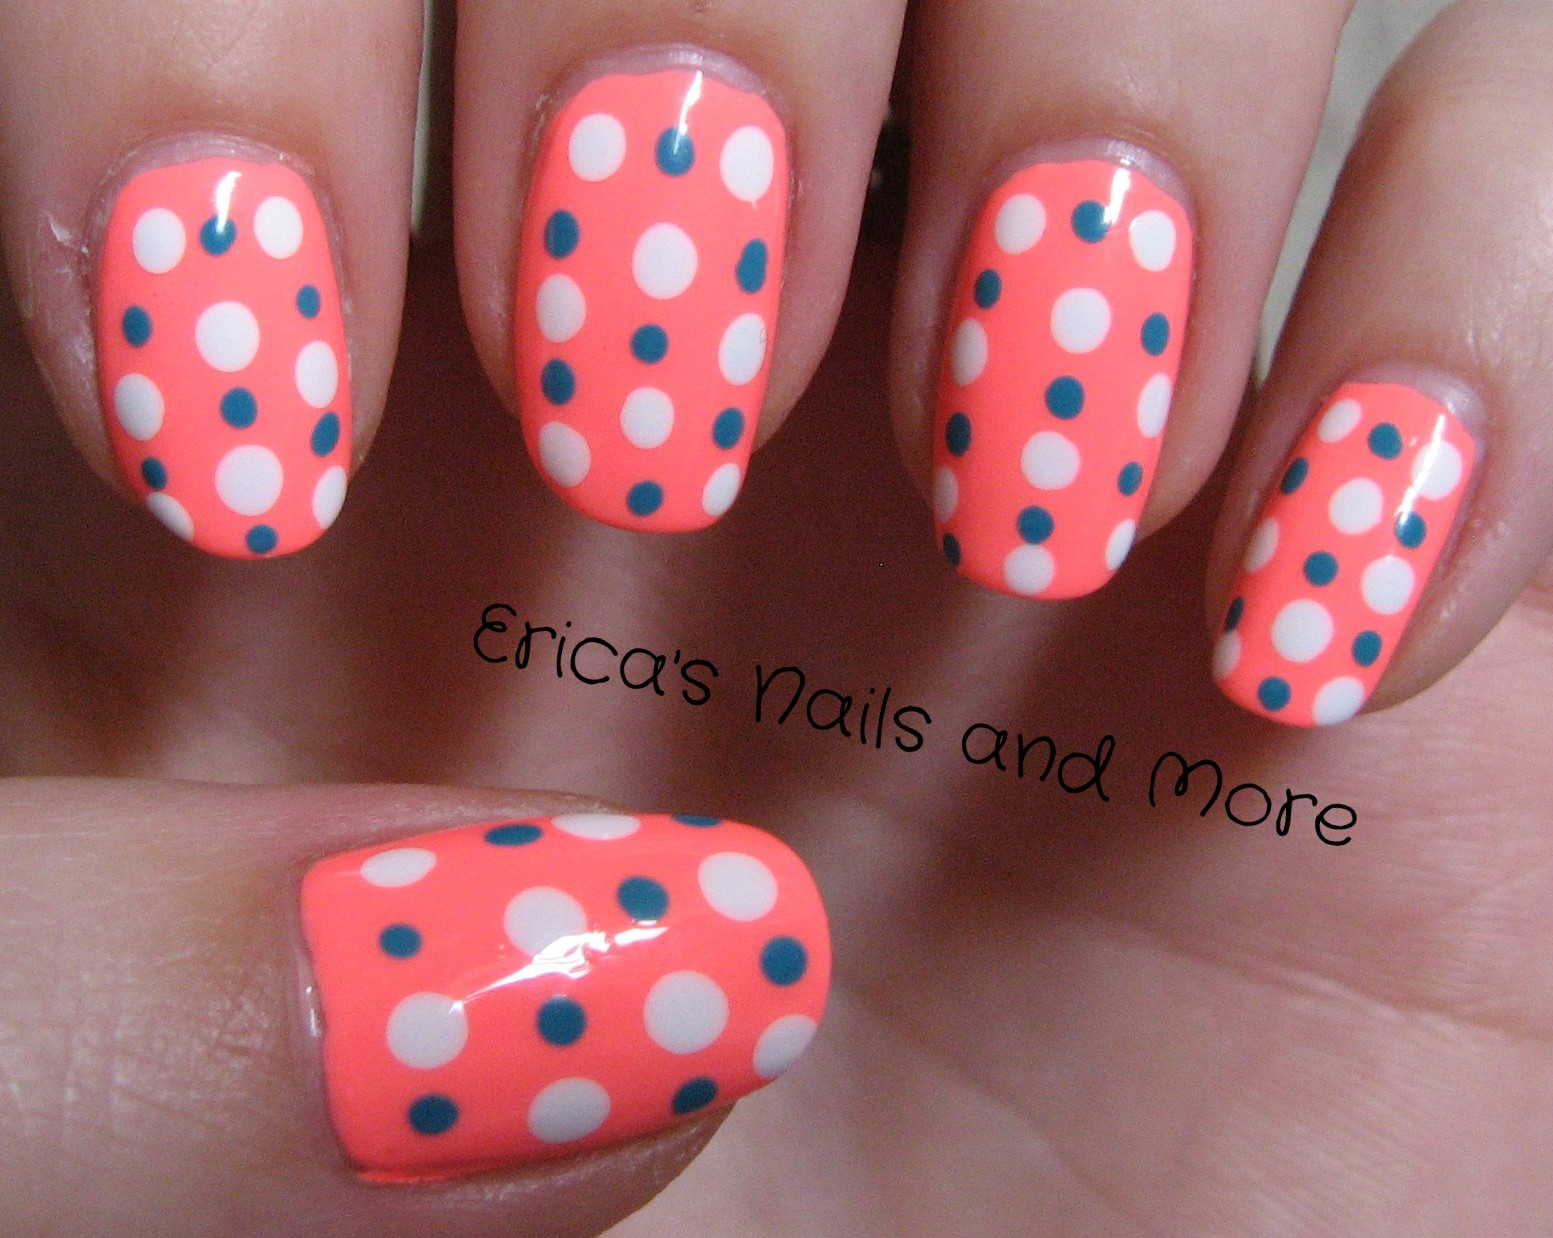 Ericas nails and more november nail art challenge day 2 for this design i used my new china glaze flip flop fantasy as my base colour 3 coats and placed large dots of sally hansen xtreme wear white on and then prinsesfo Choice Image